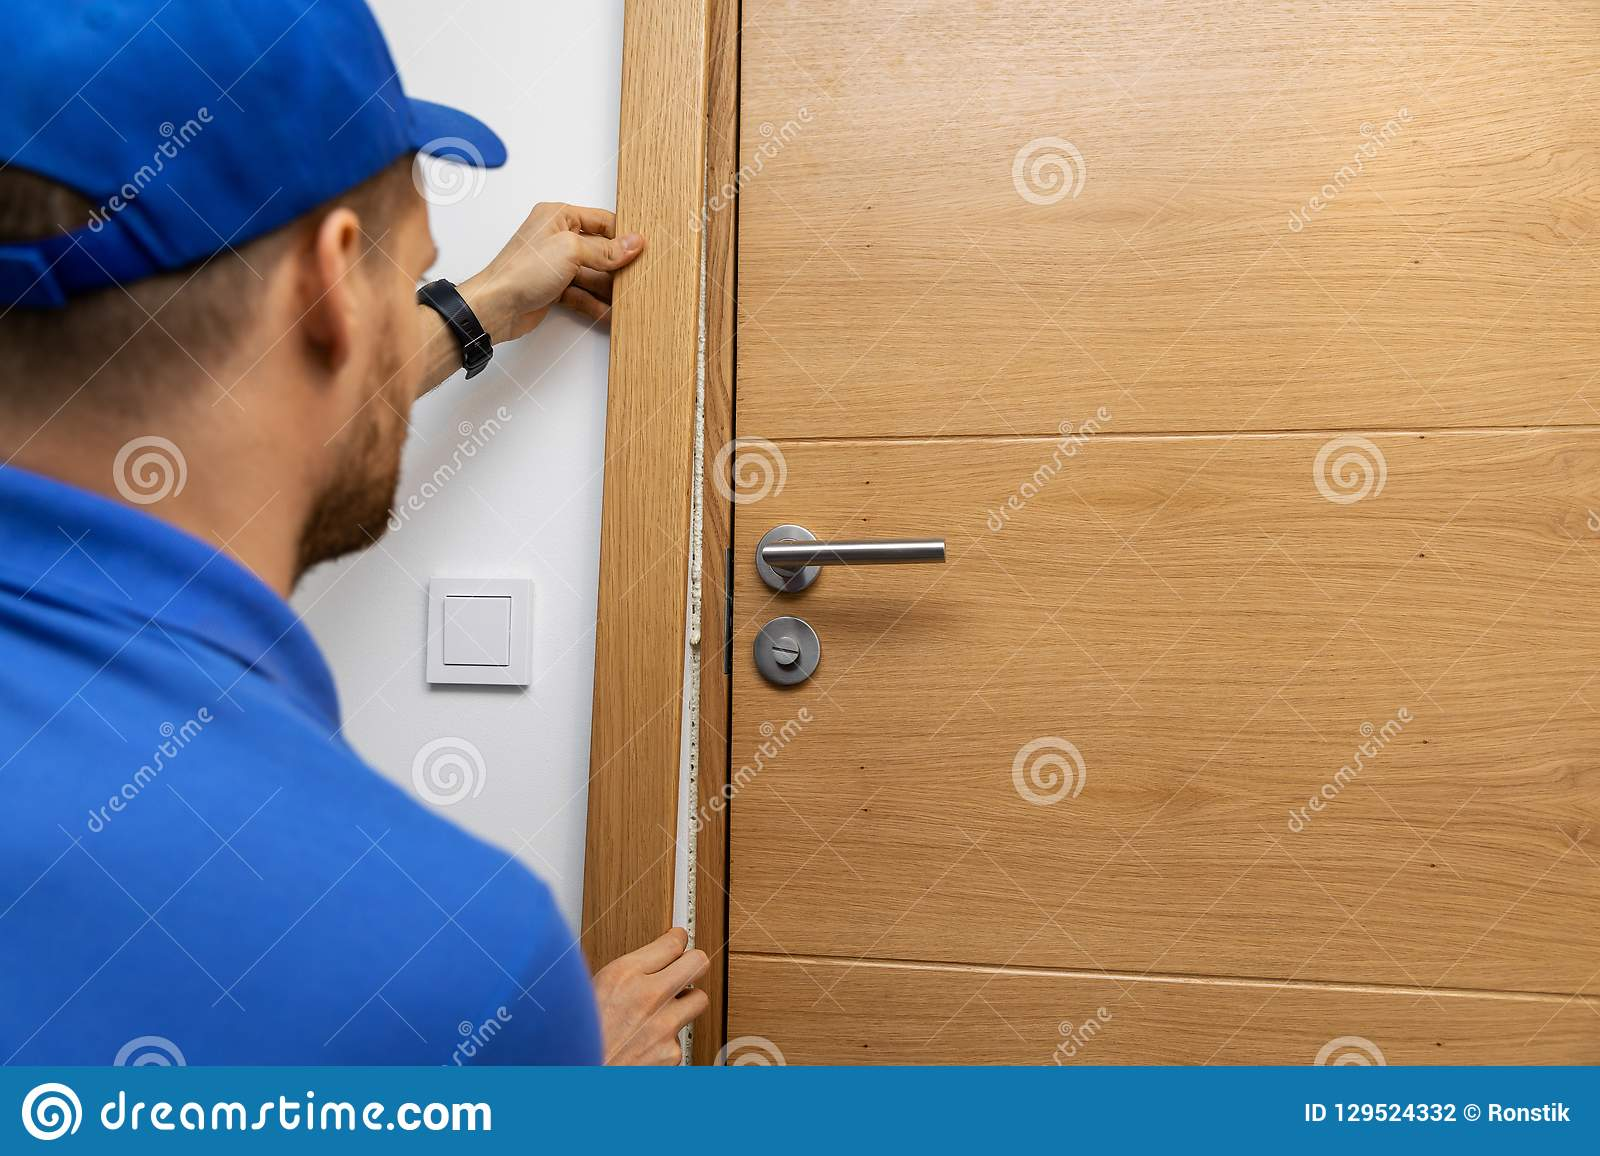 335 Door Architrave Photos Free Royalty Free Stock Photos From Dreamstime